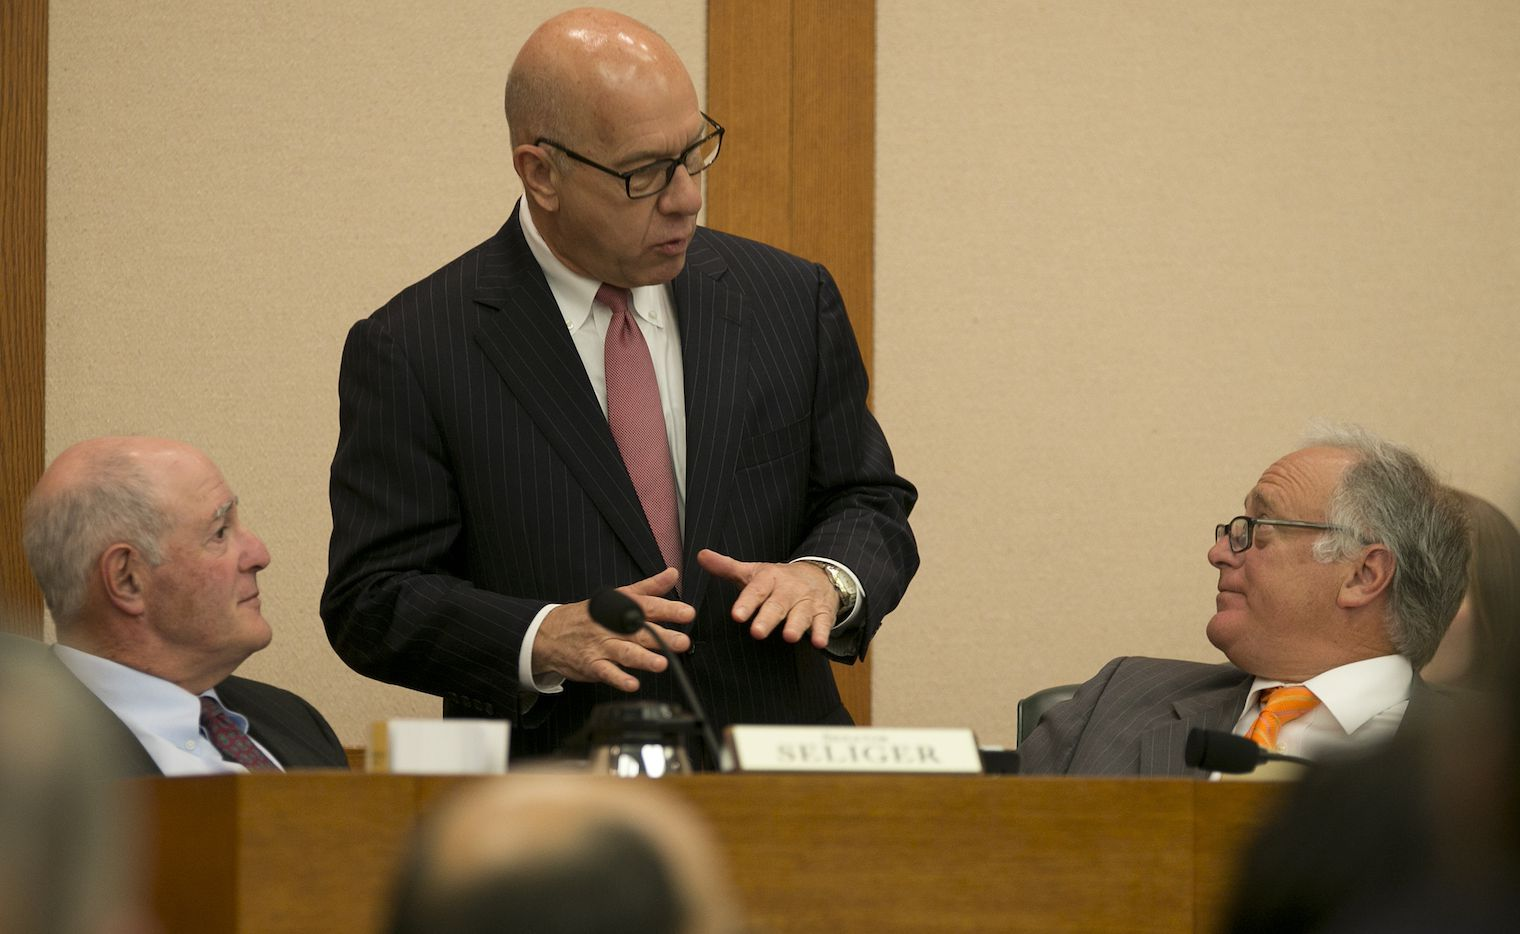 """Texas Sen. John Whitmire, center, speaks with Sen. Kel Seliger, left, and Sen. Kirk Watson during a Senate Finance Committee hearing Feb. 23 at the state Capitol in Austin. Whitmire has proposed a bill that would abolish the """"pick-a-pal"""" grand jury selection system. The bill was approved by the Senate's criminal justice committee Tuesday. (AP Photo/Austin American-Statesman, Deborah Cannon)"""